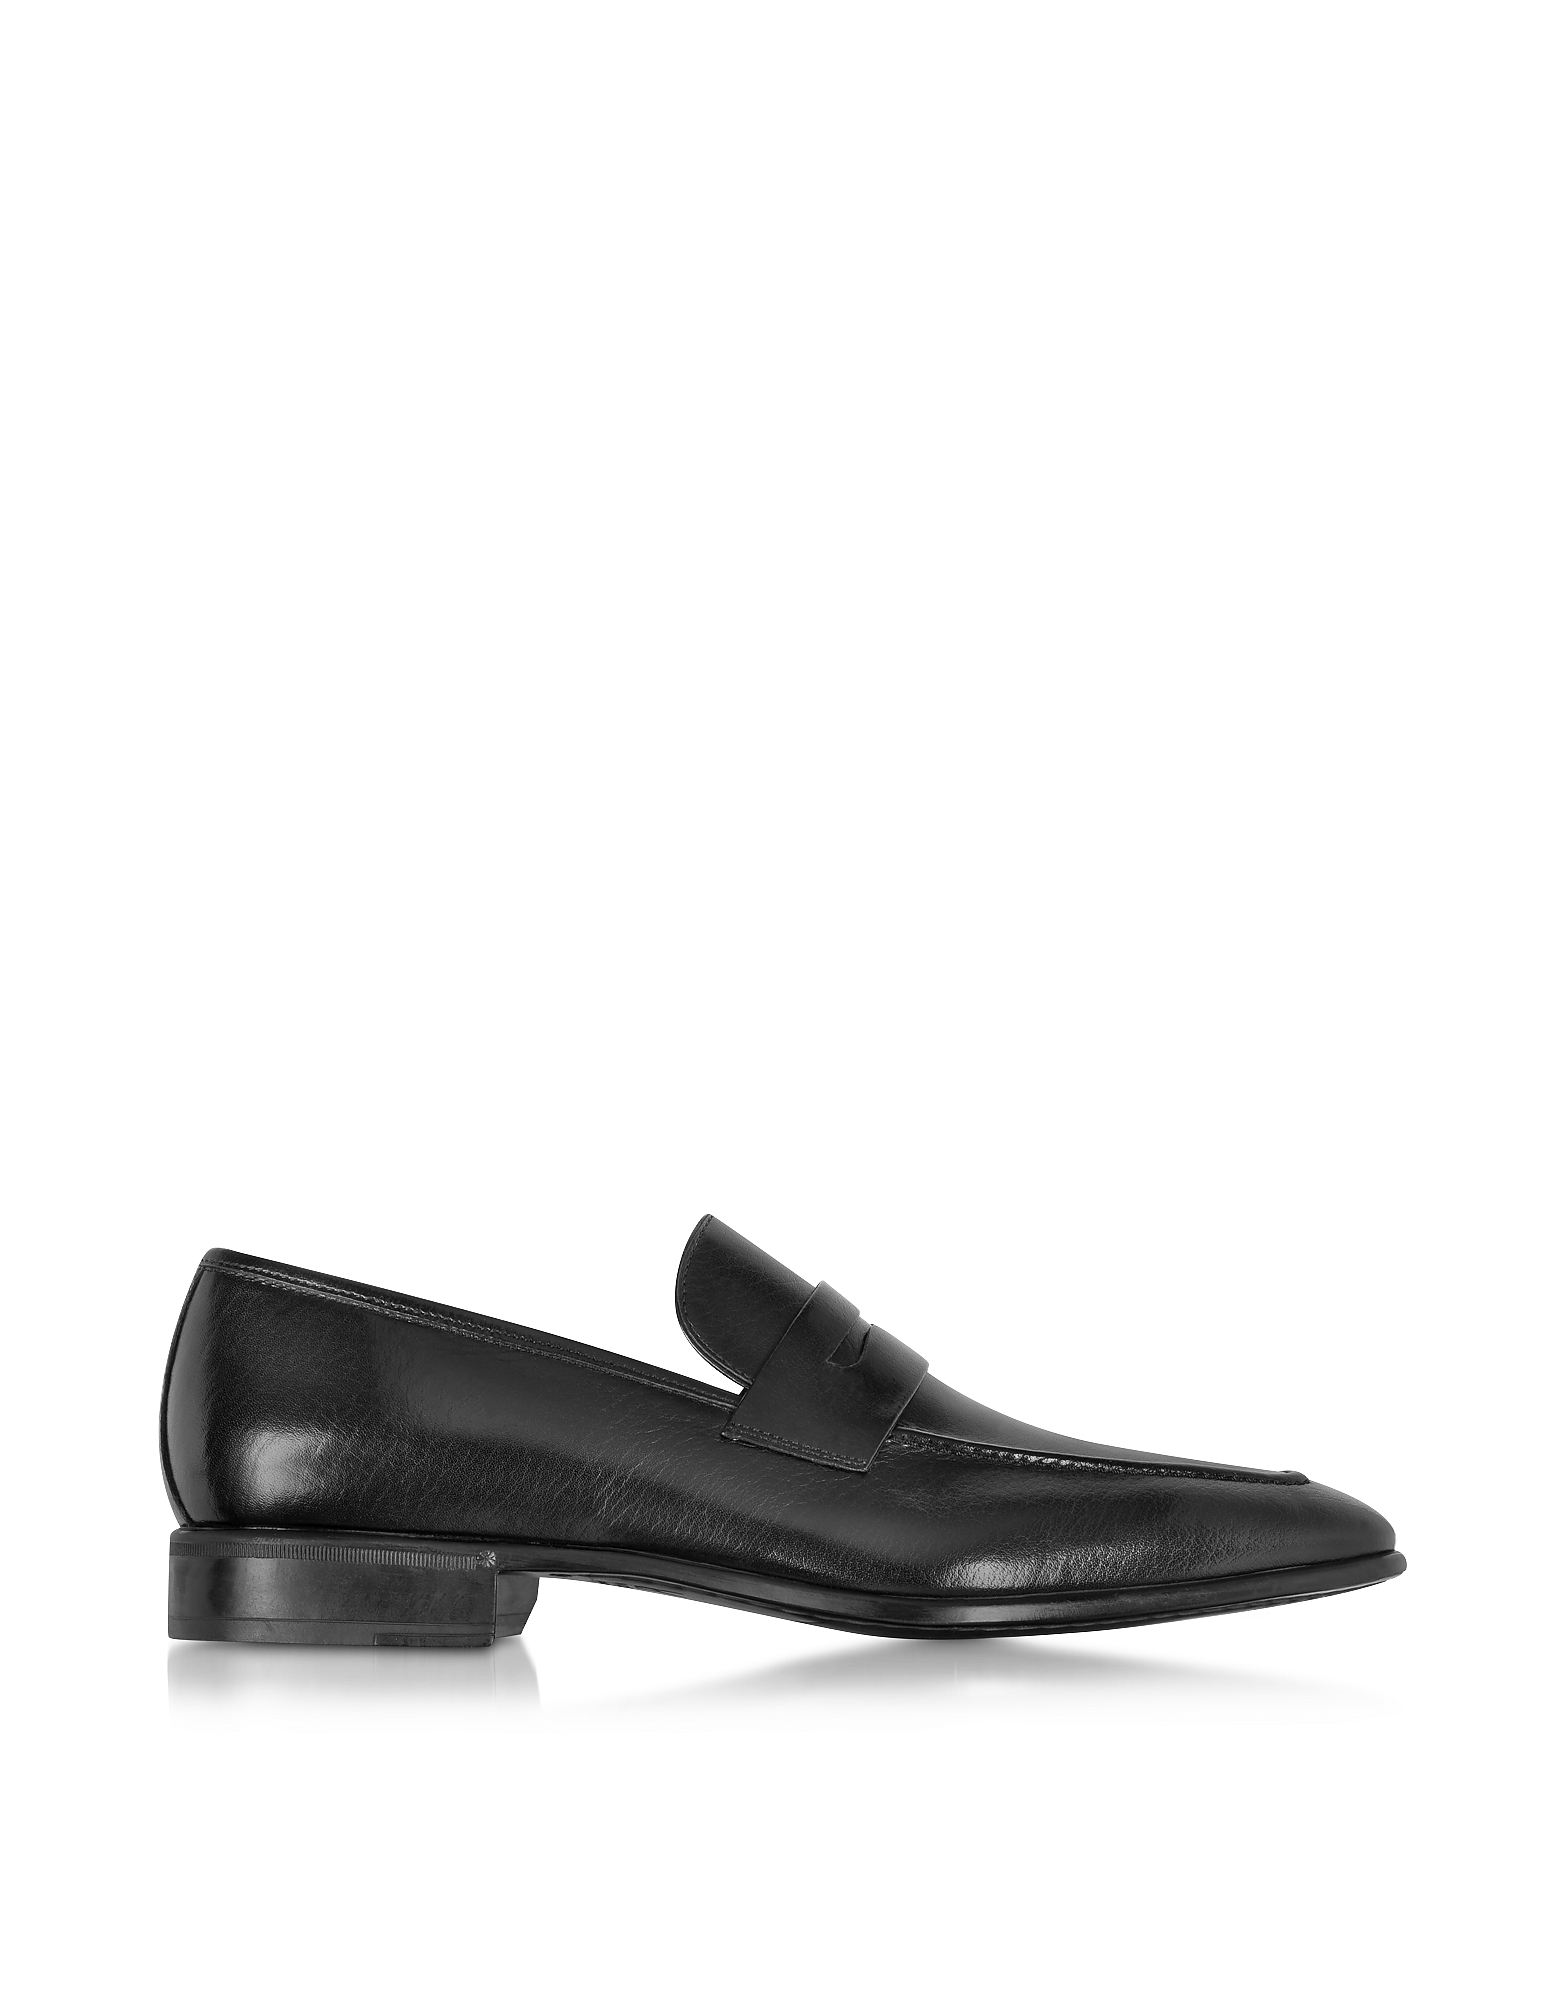 Moreschi Shoes, Liegi Black Buffalo Leather Loafer w/Rubber Sole